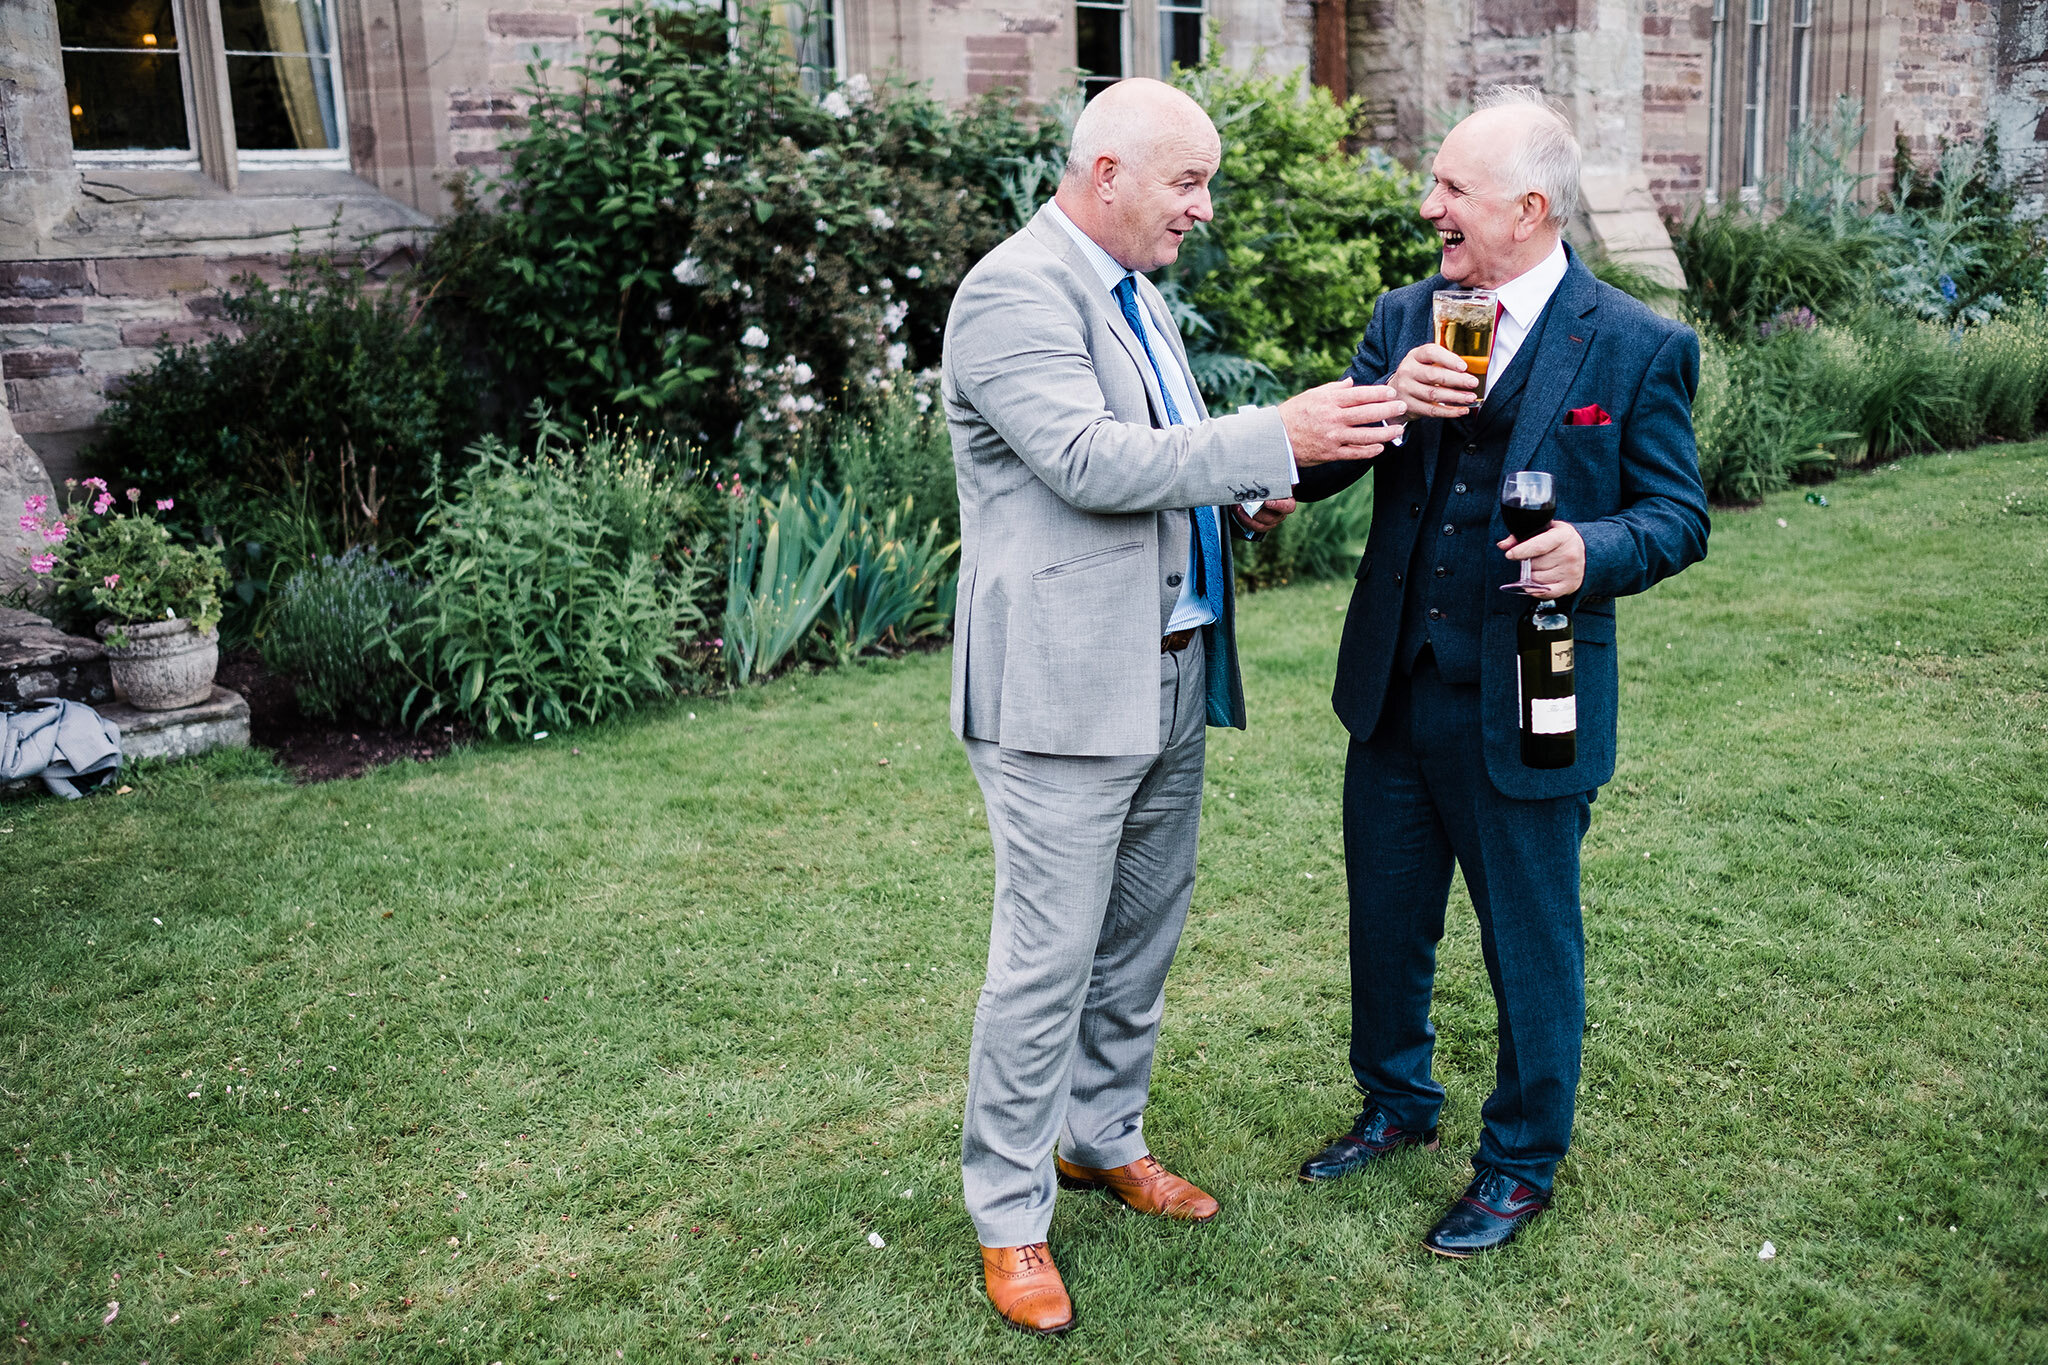 Scott-Stockwell-Photography-wedding-photographer-hampton-court-castle-guests-drinking.jpg